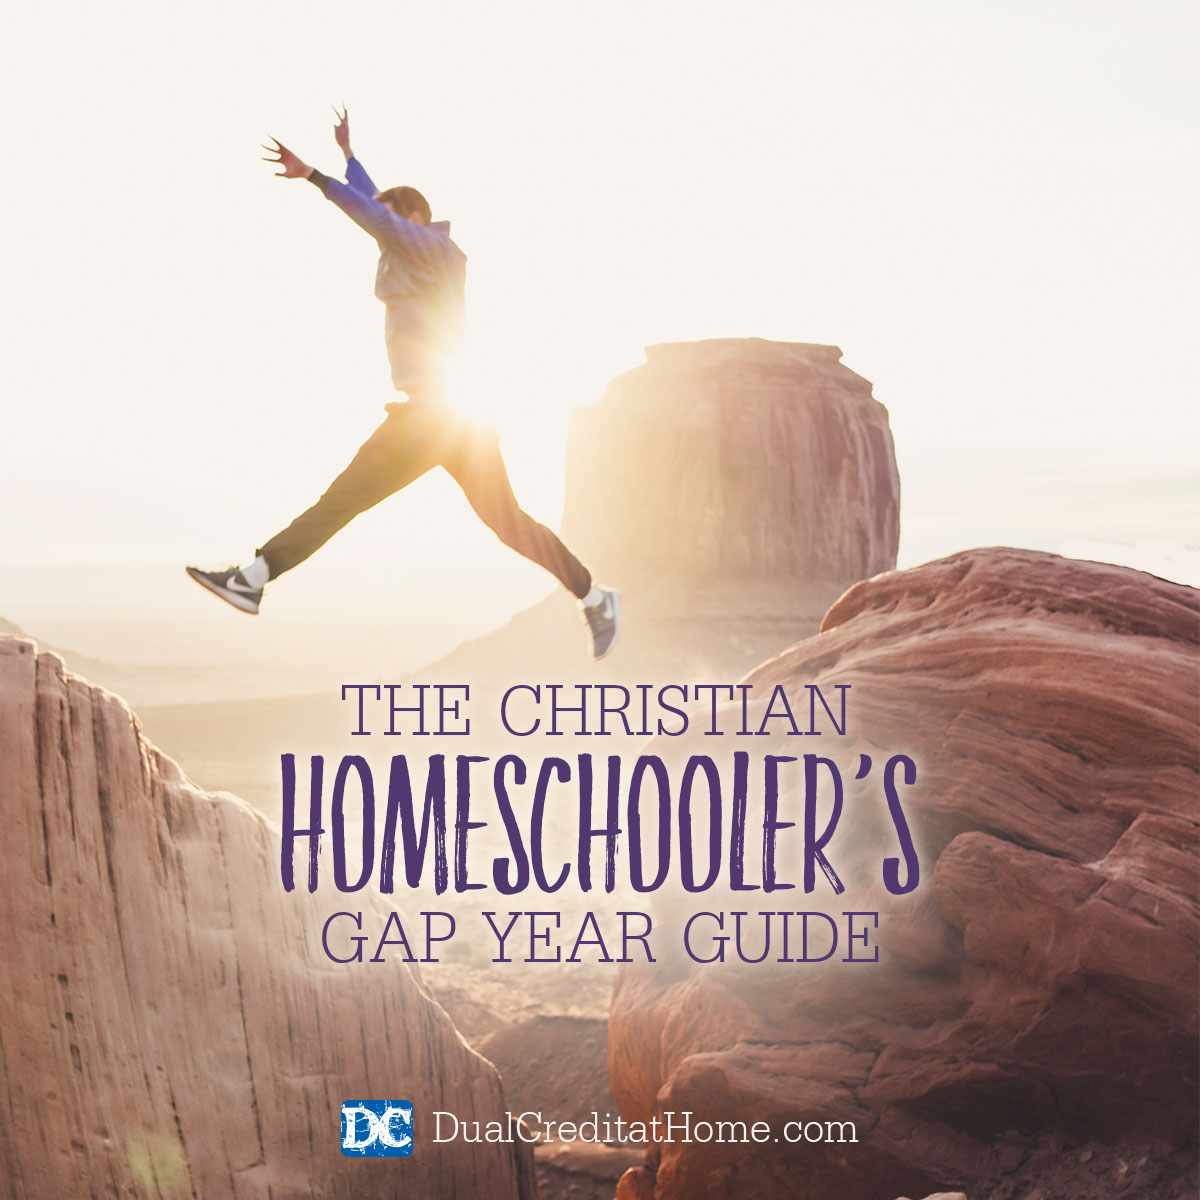 Christian Homeschooler's Gap Year Guide